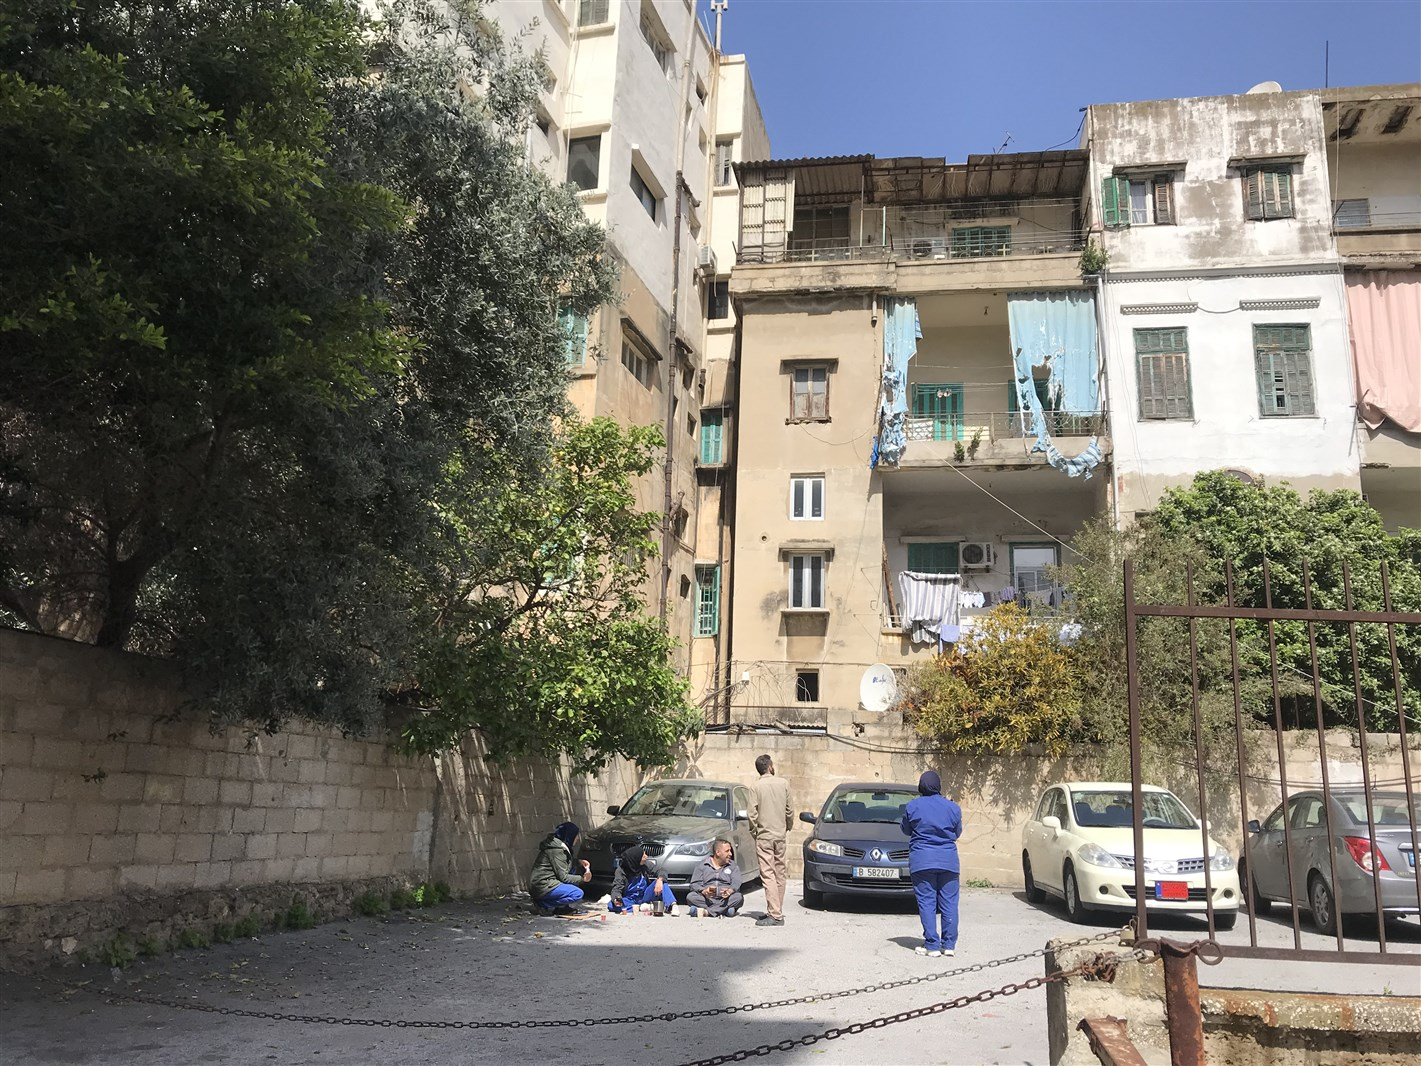 Vacancy as Opportunity: Re-activating Public Life in Beirut